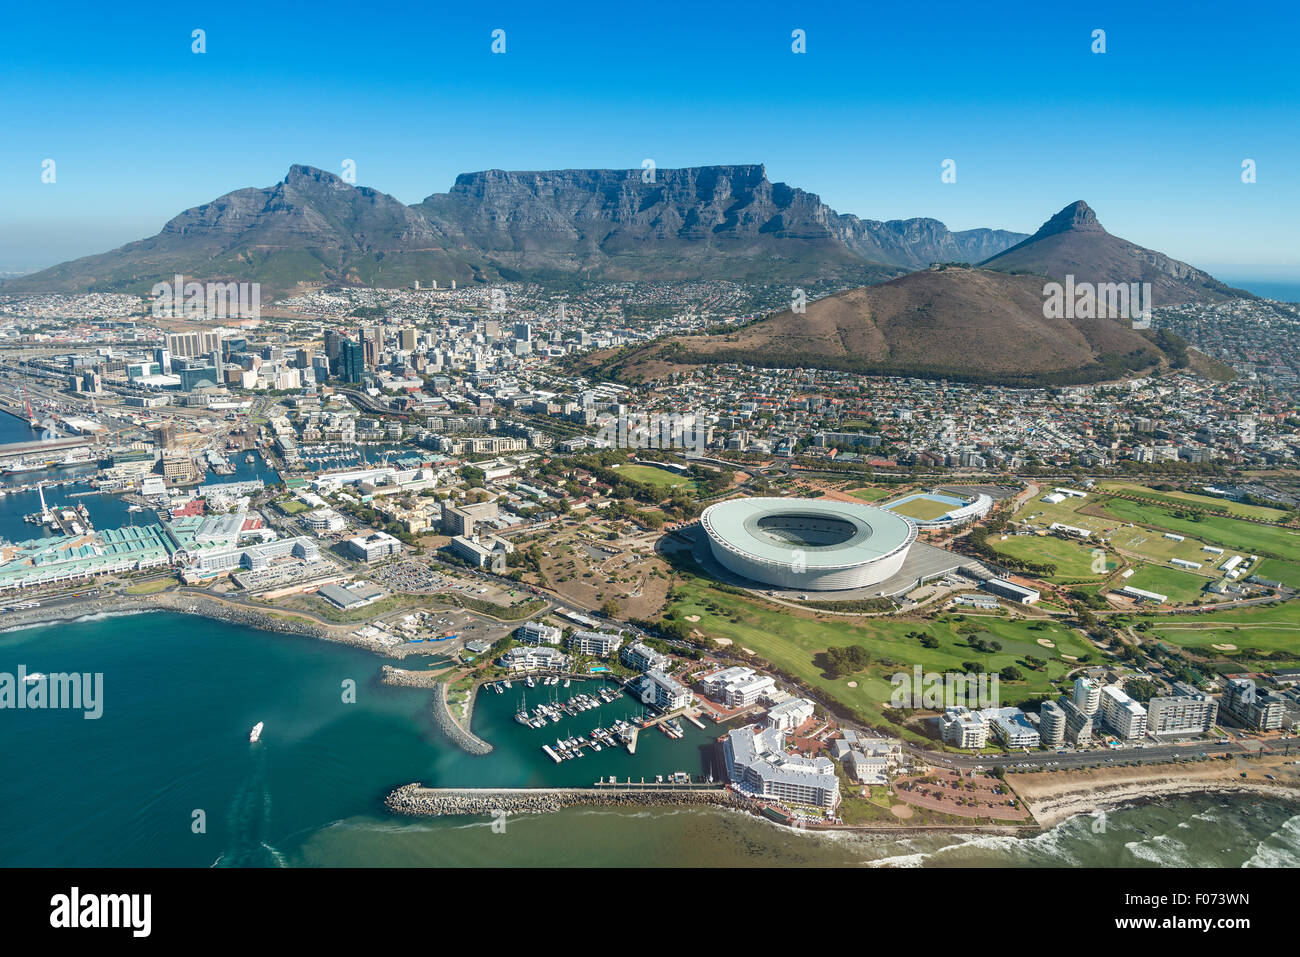 Aerial view of Cape Town, Western Cape Province, Republic of South Africa - Stock Image